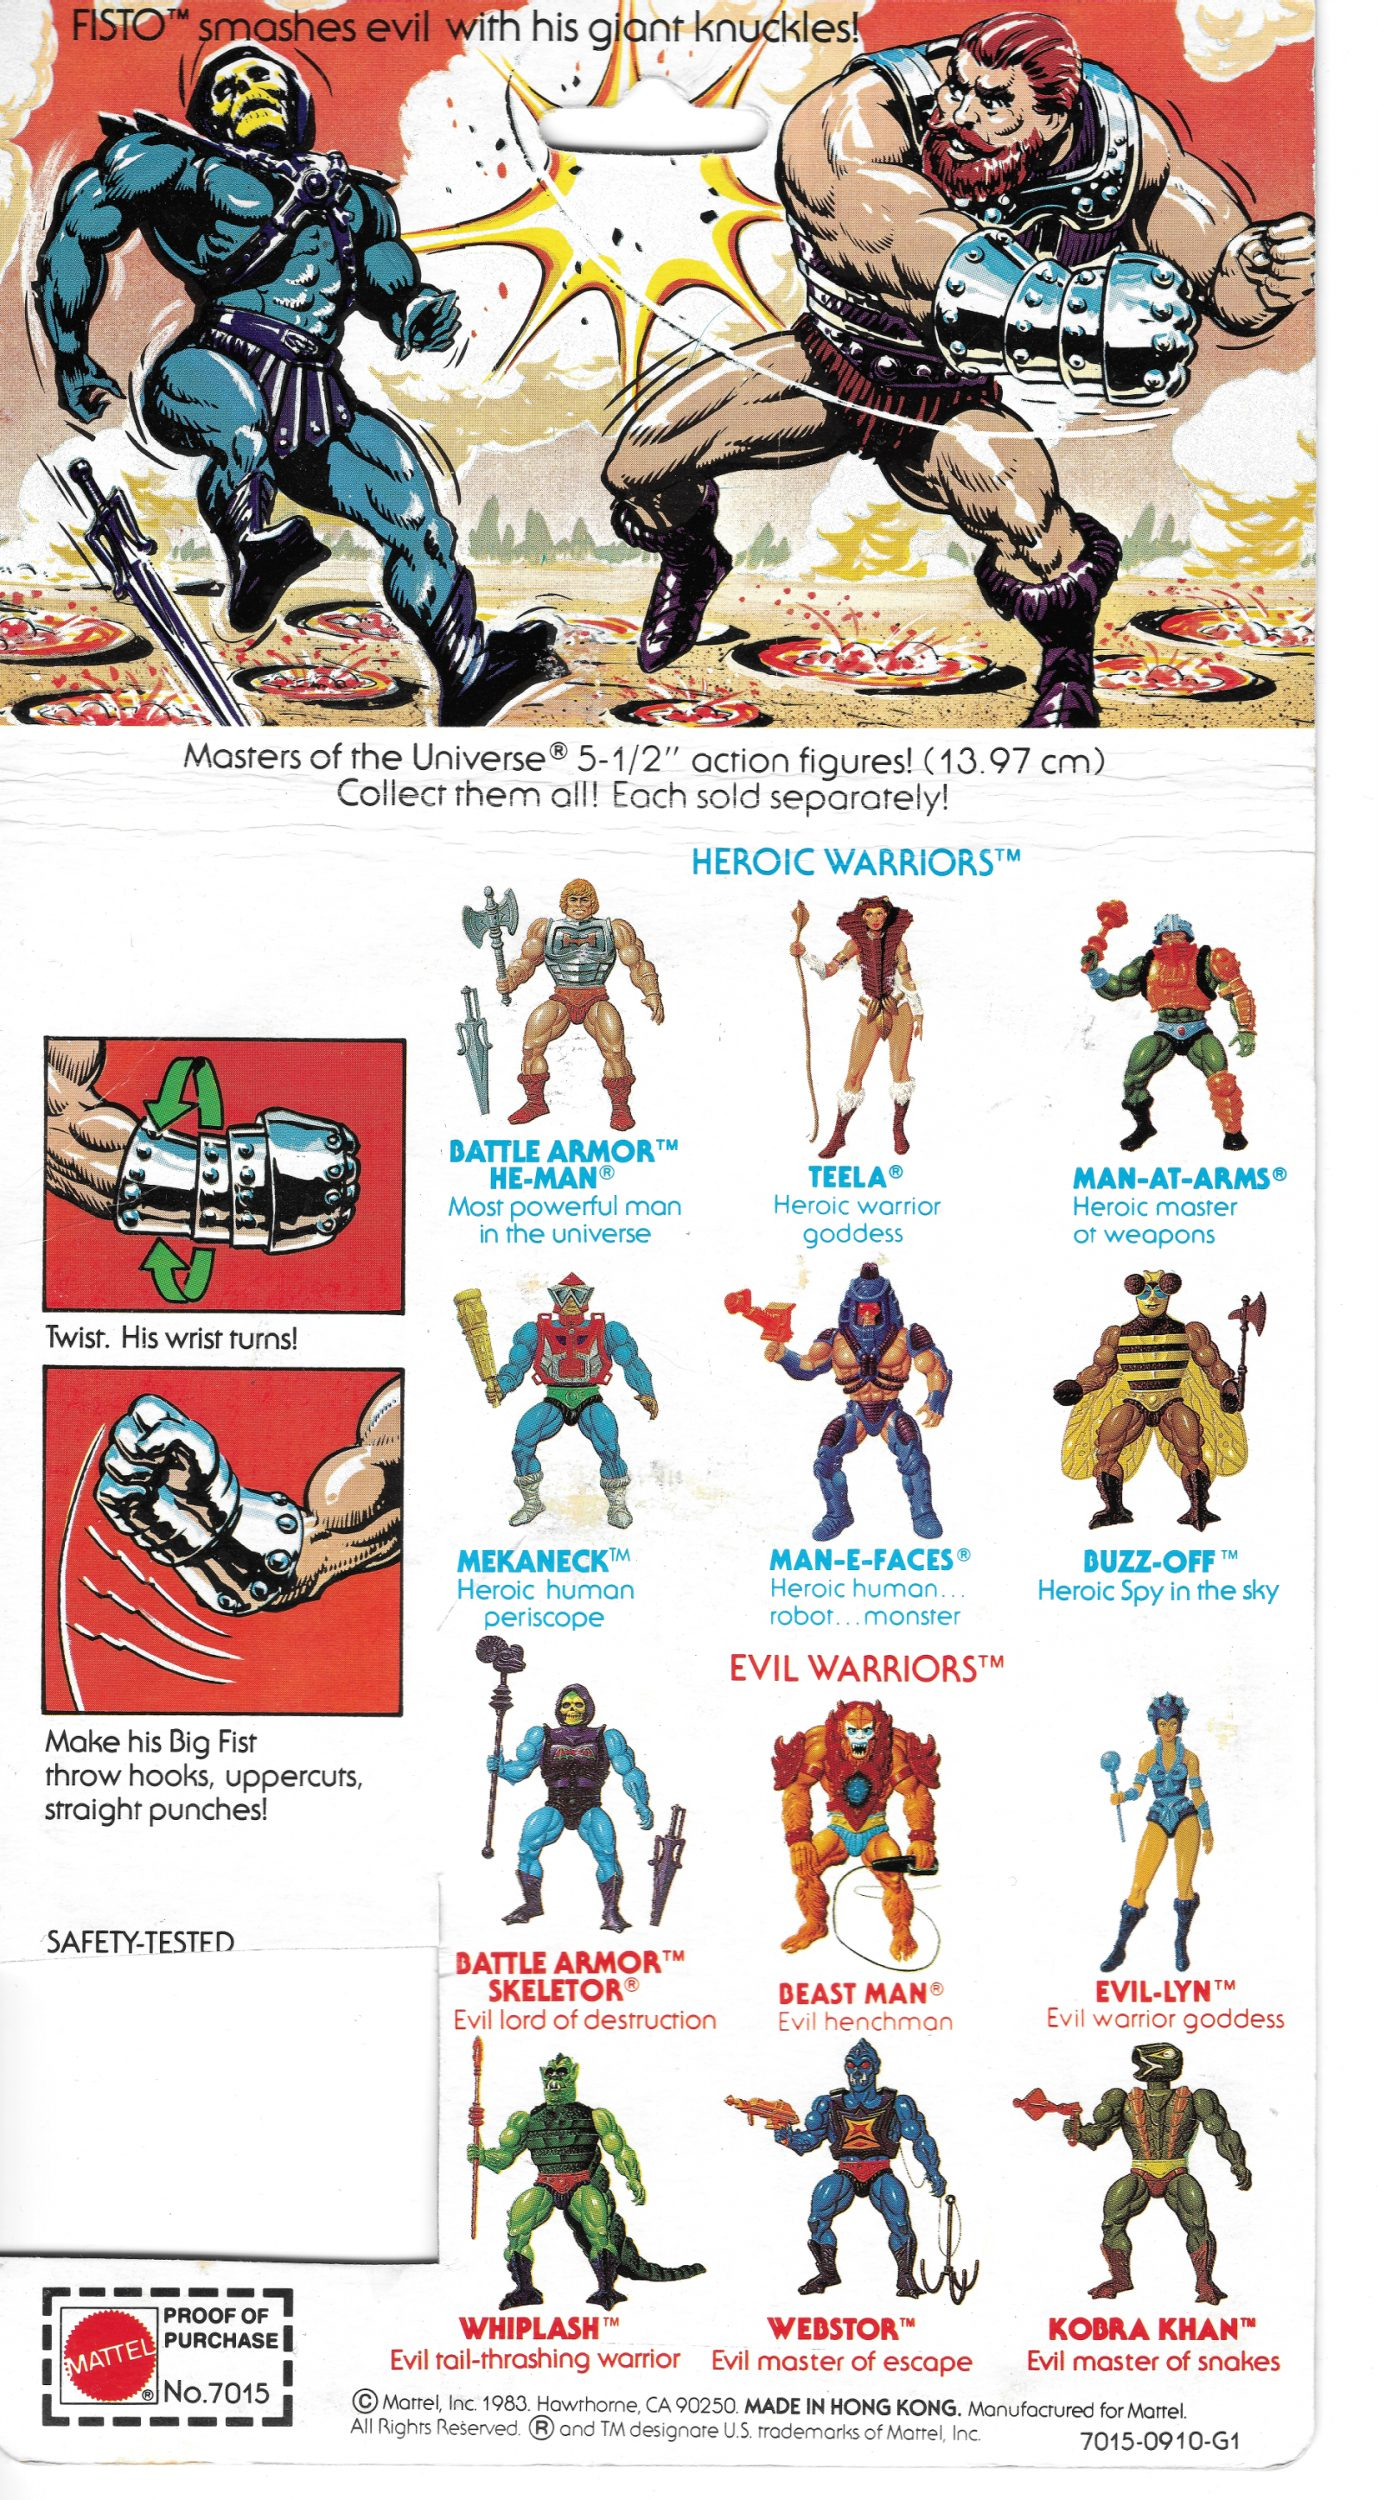 Masters of the Universe-Panini sticker nº 2,3,4,5,13,16,17,18-1983 fimation